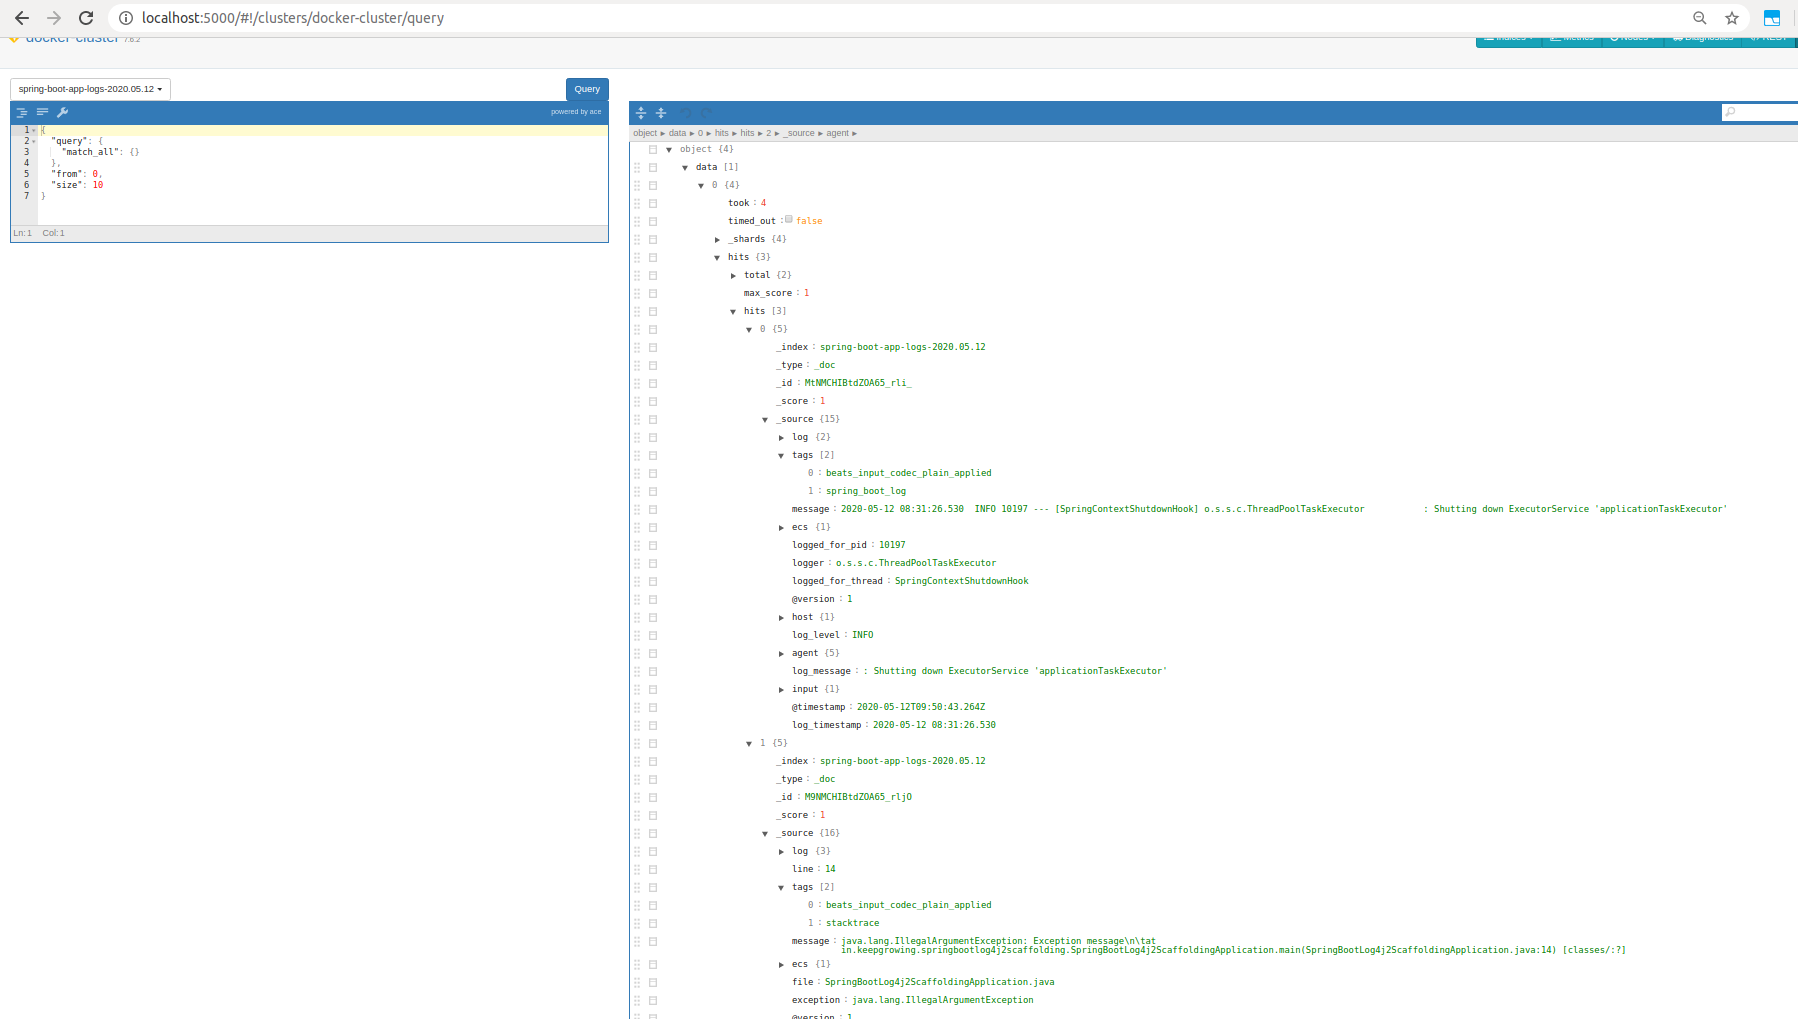 see logs processed with Elastic Stack in Elastihq